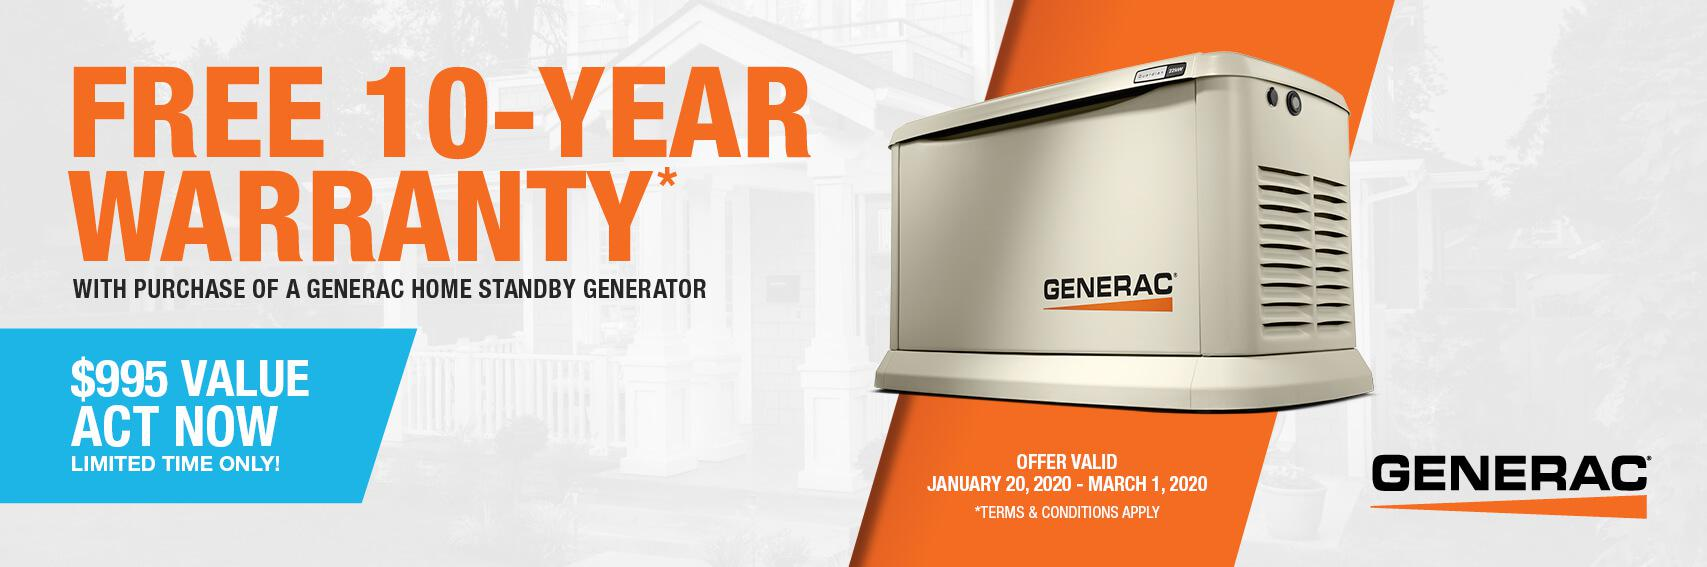 Homestandby Generator Deal | Warranty Offer | Generac Dealer | Thomasville, GA